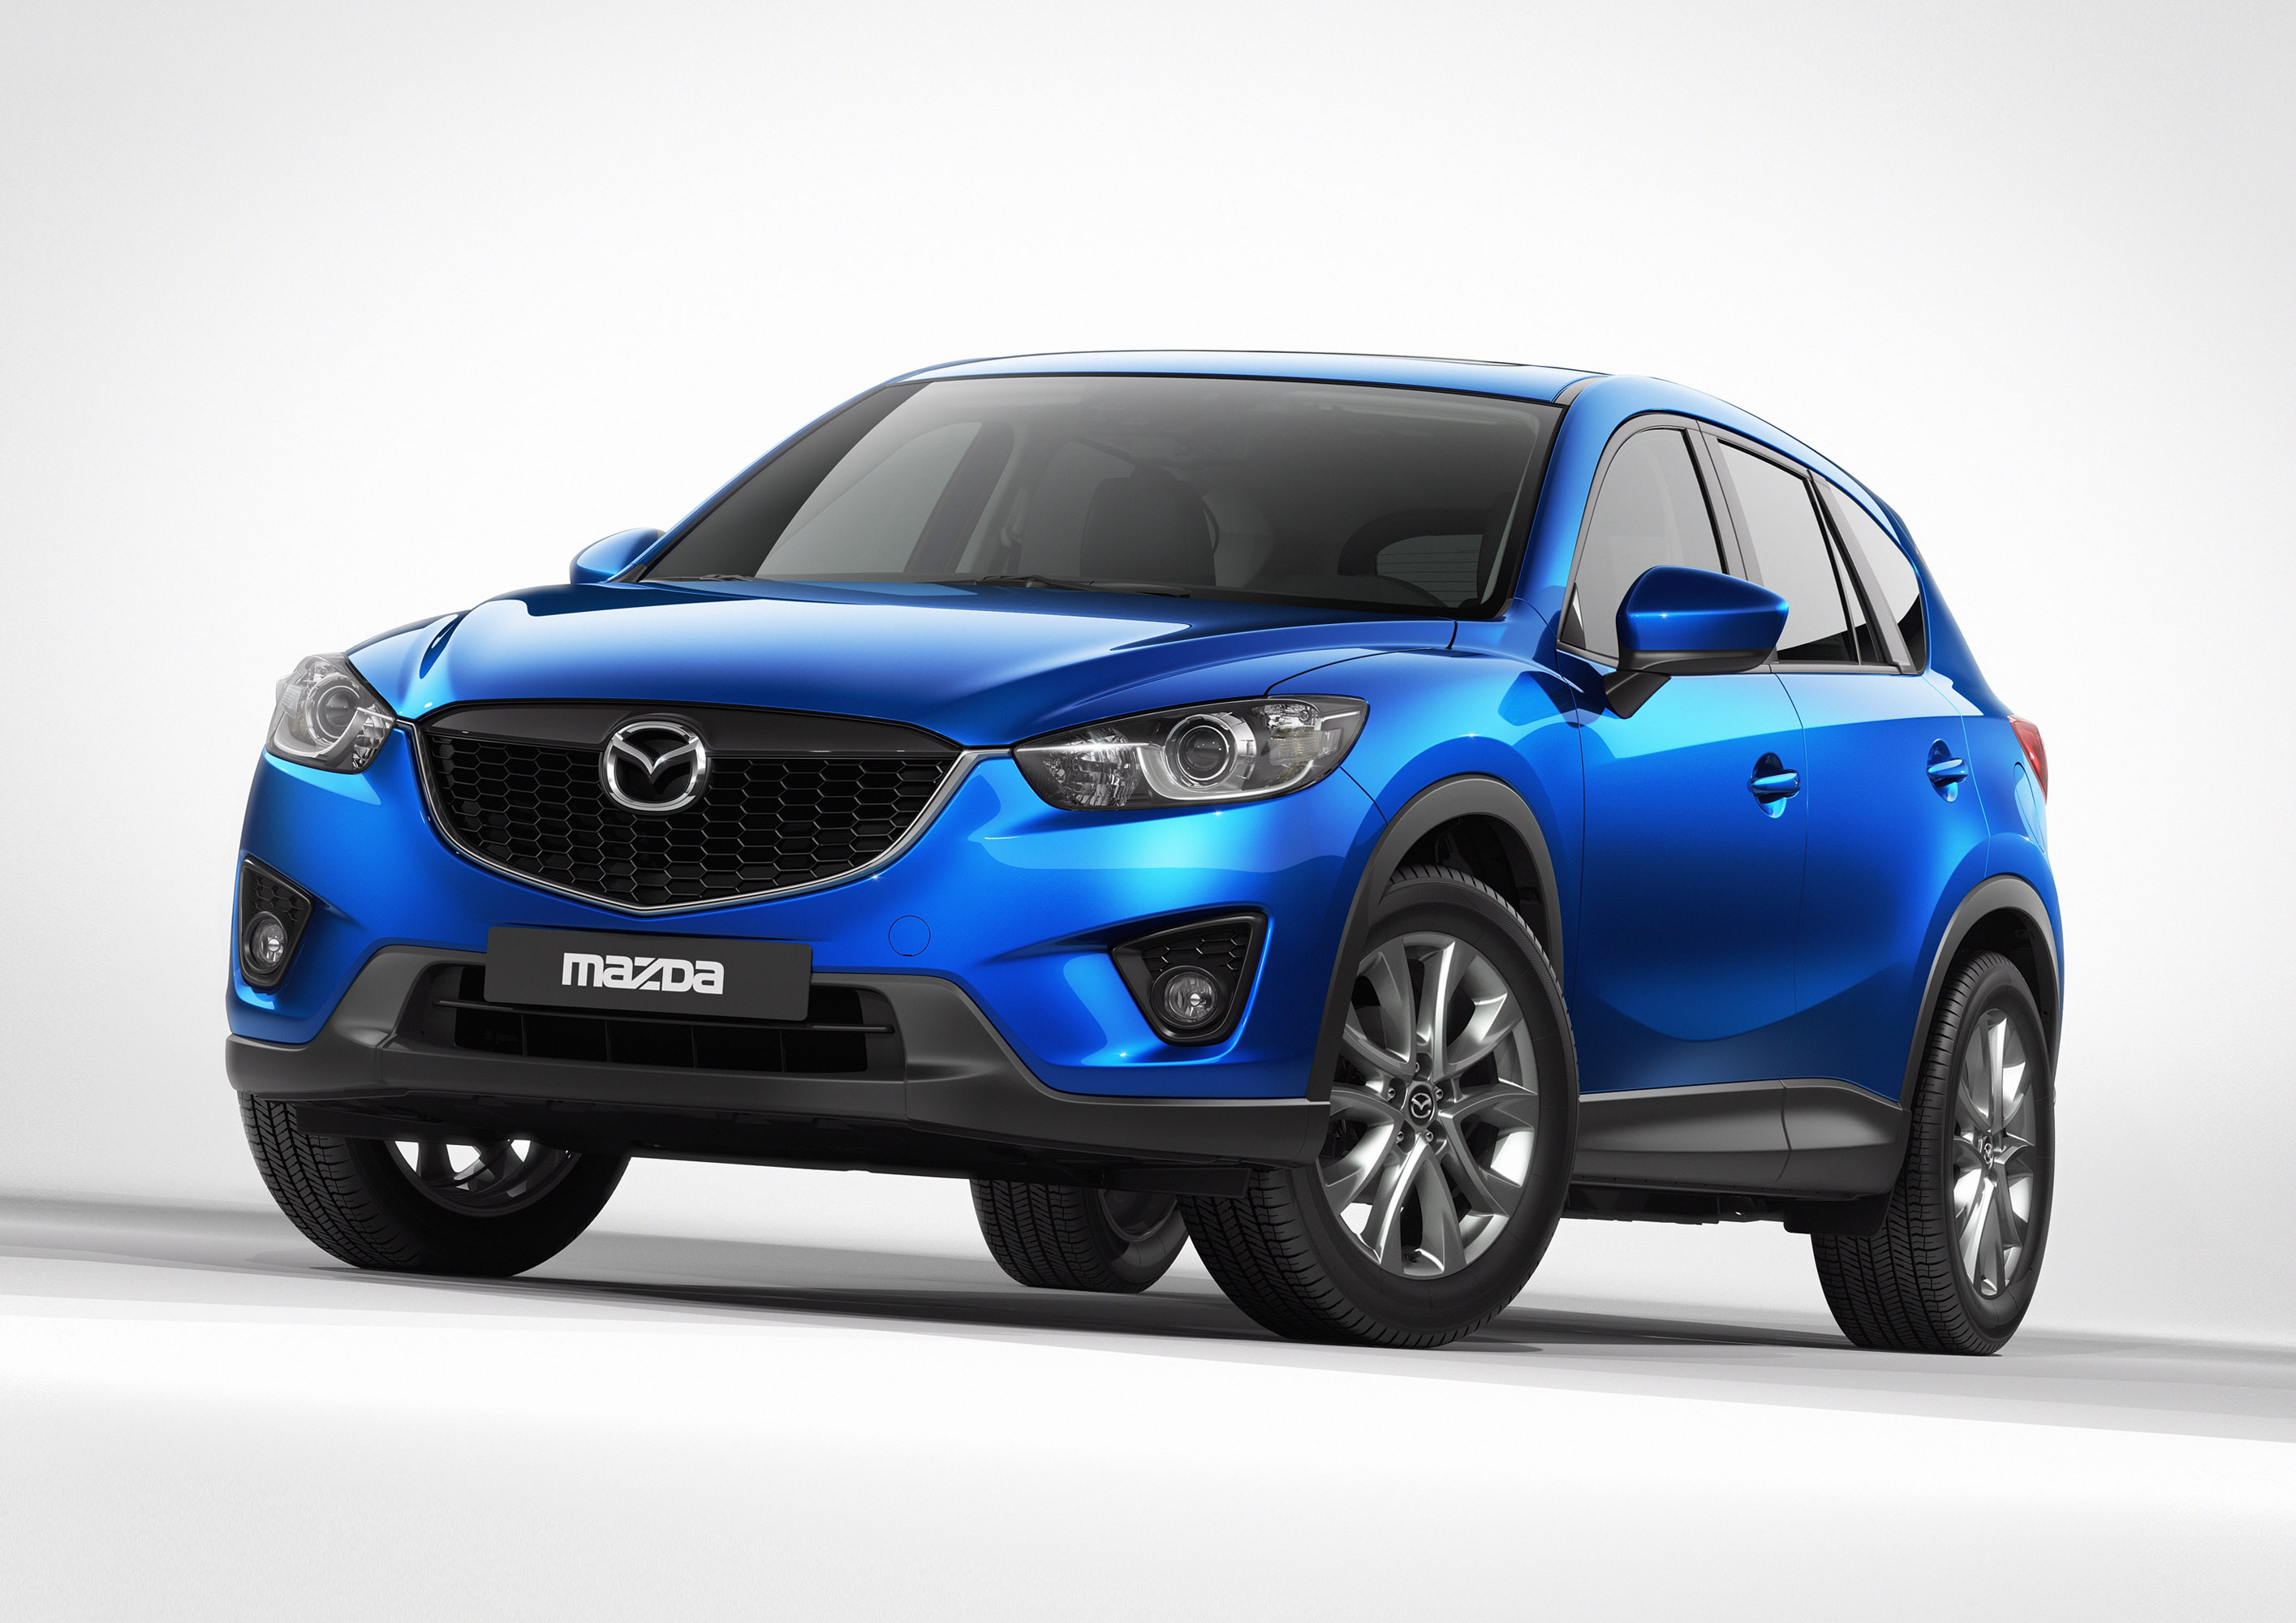 2012 mazda cx-5 at the frankfurt motor show